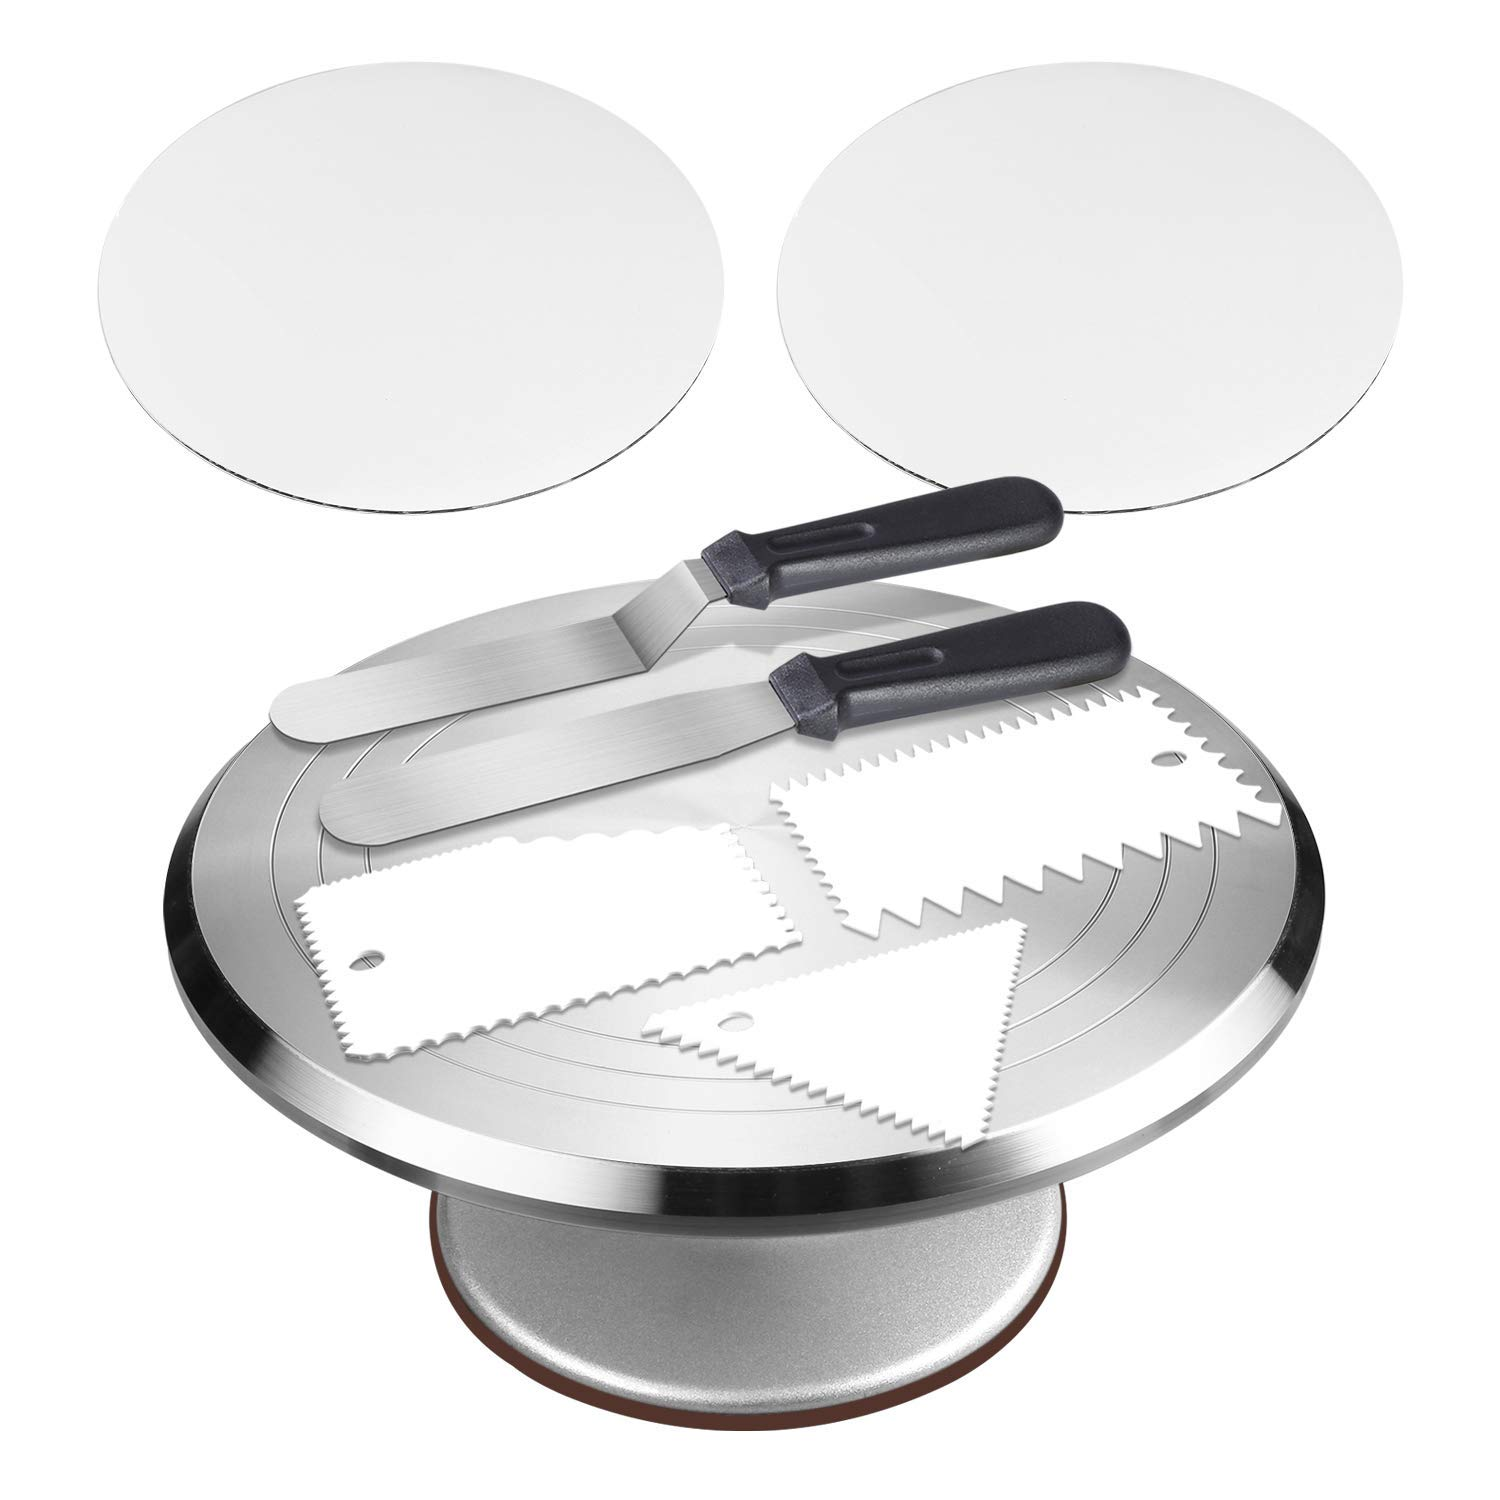 Cake Decorating Supplies - Aluminium Alloy Revolving Cake Stand with 12'' Rotating Cake Decorating Stand,2 Piece 10 Inch Cake Boards, 2 Angled Icing Spatulas,3 Icing Combs